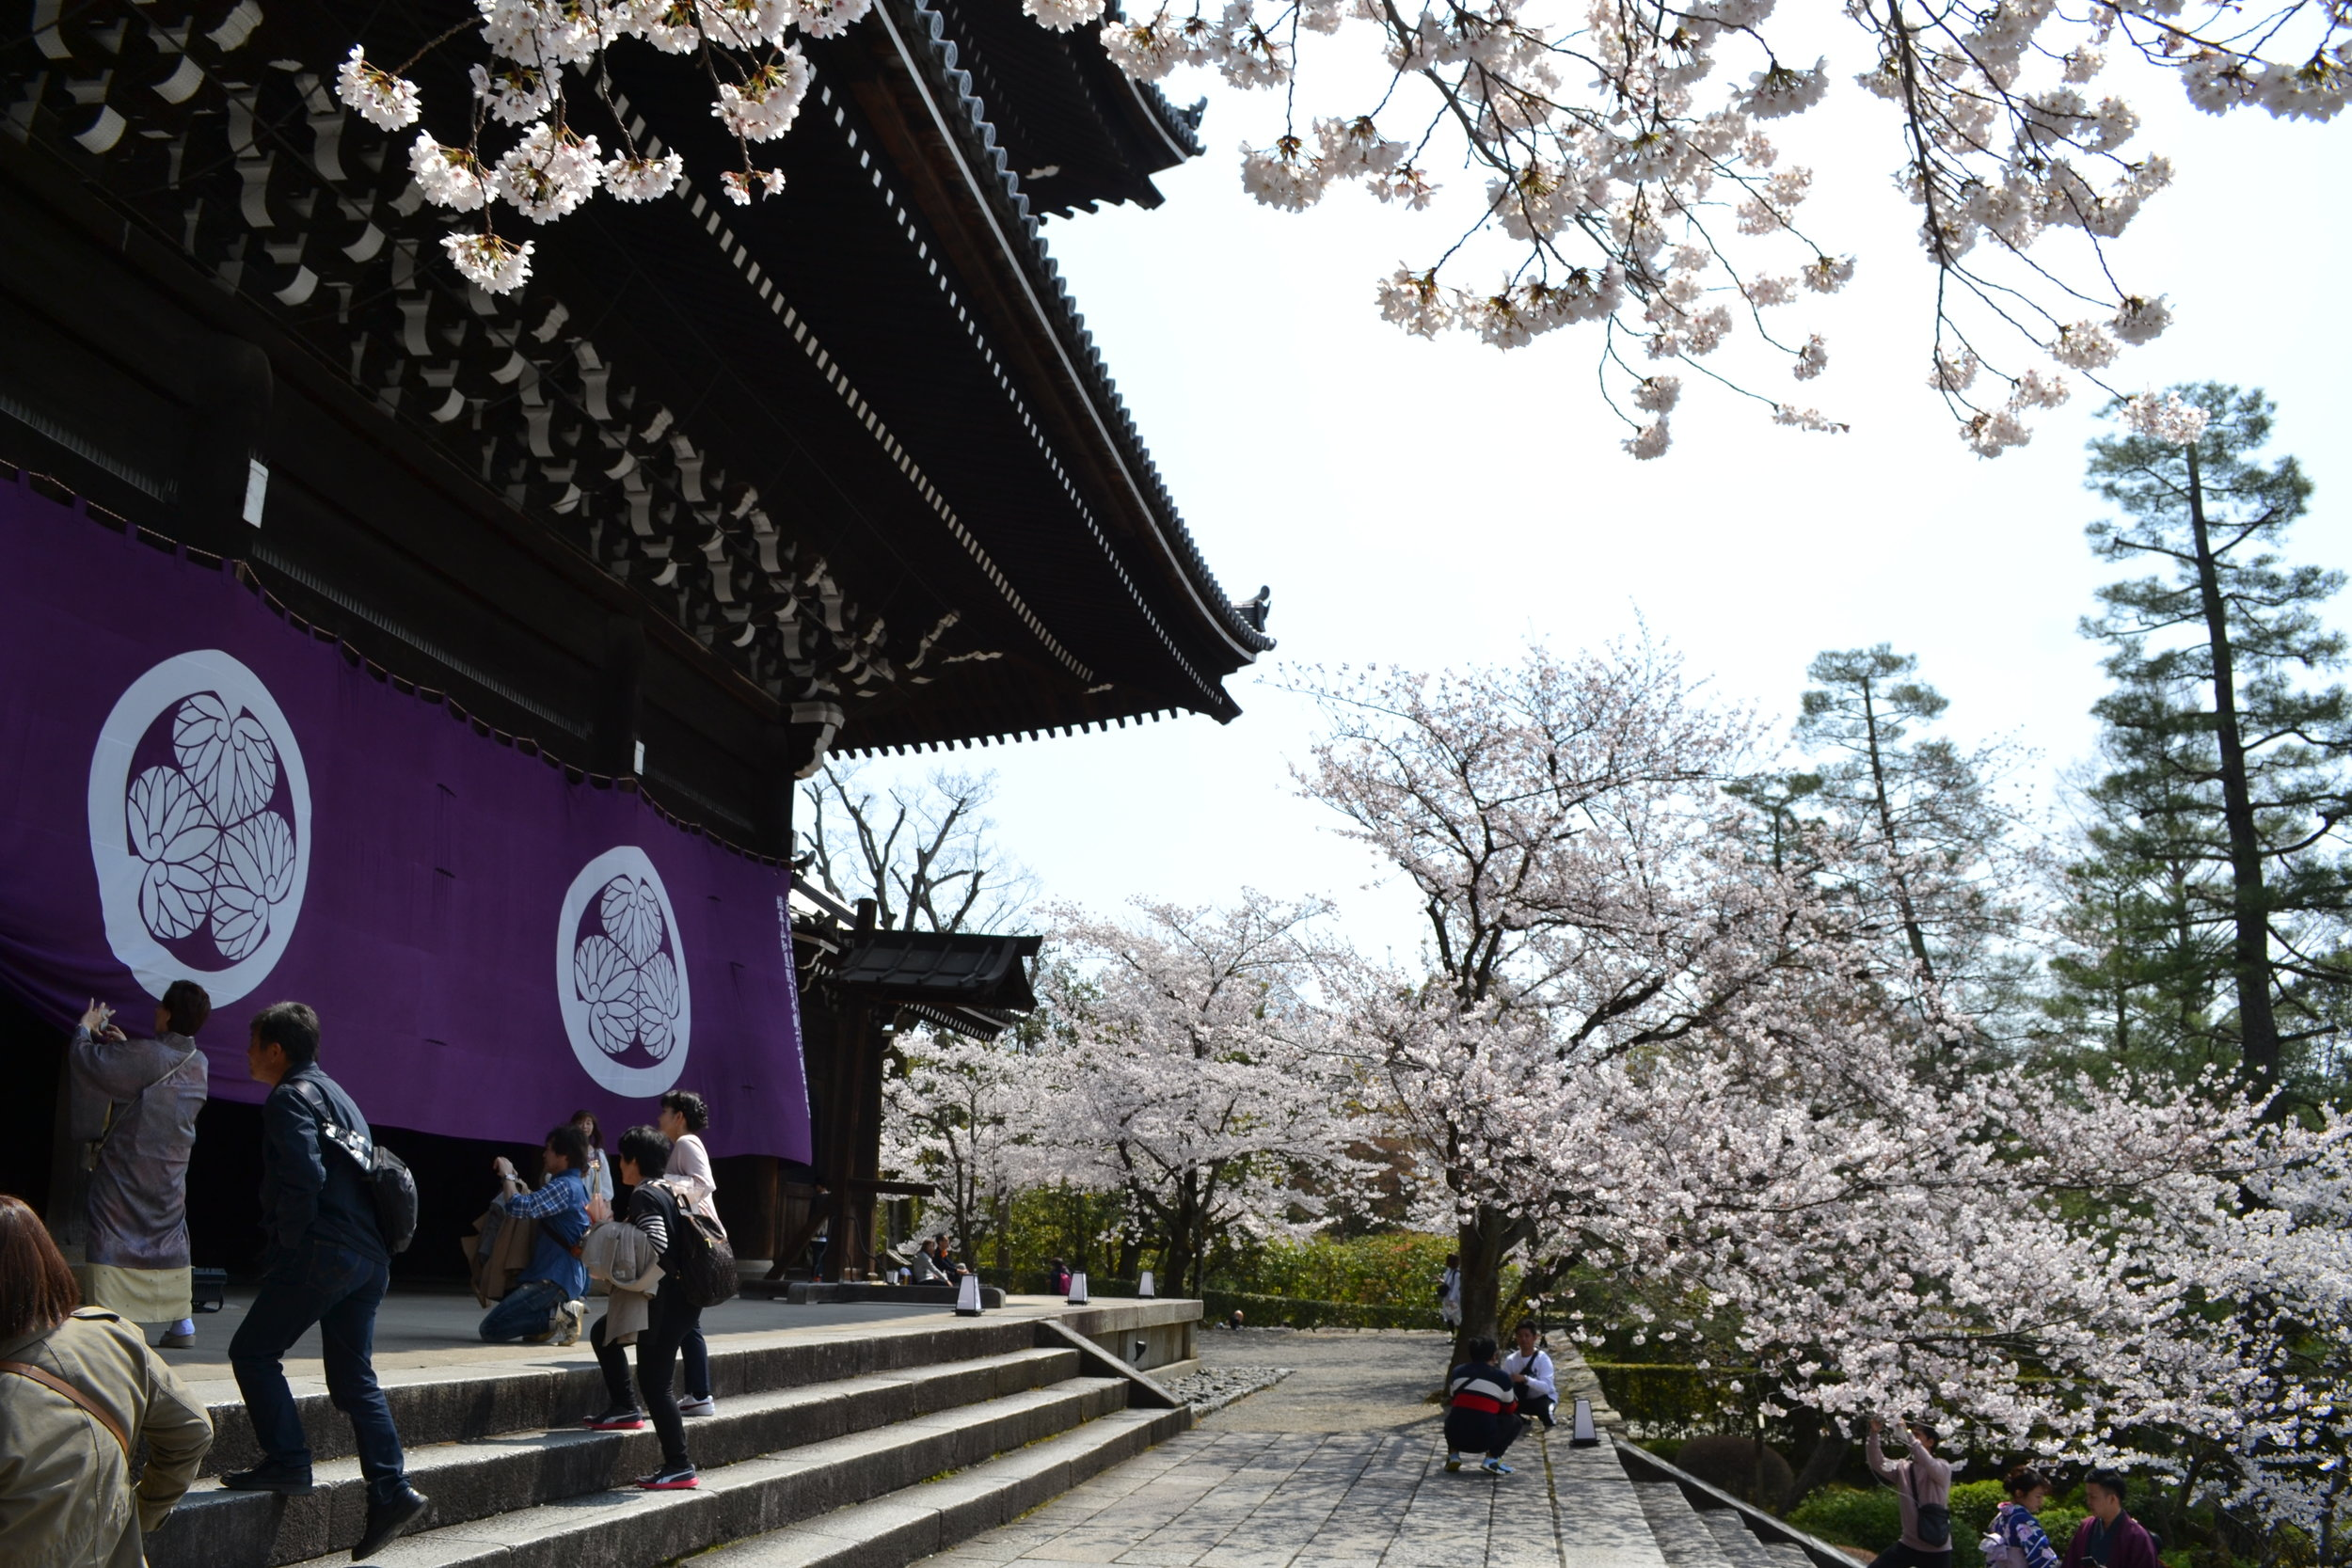 Many staris led up the entrance of the gate and I enjoyed seeing the juxtaposition of traditional temple architecture with the cherry blossom trees.